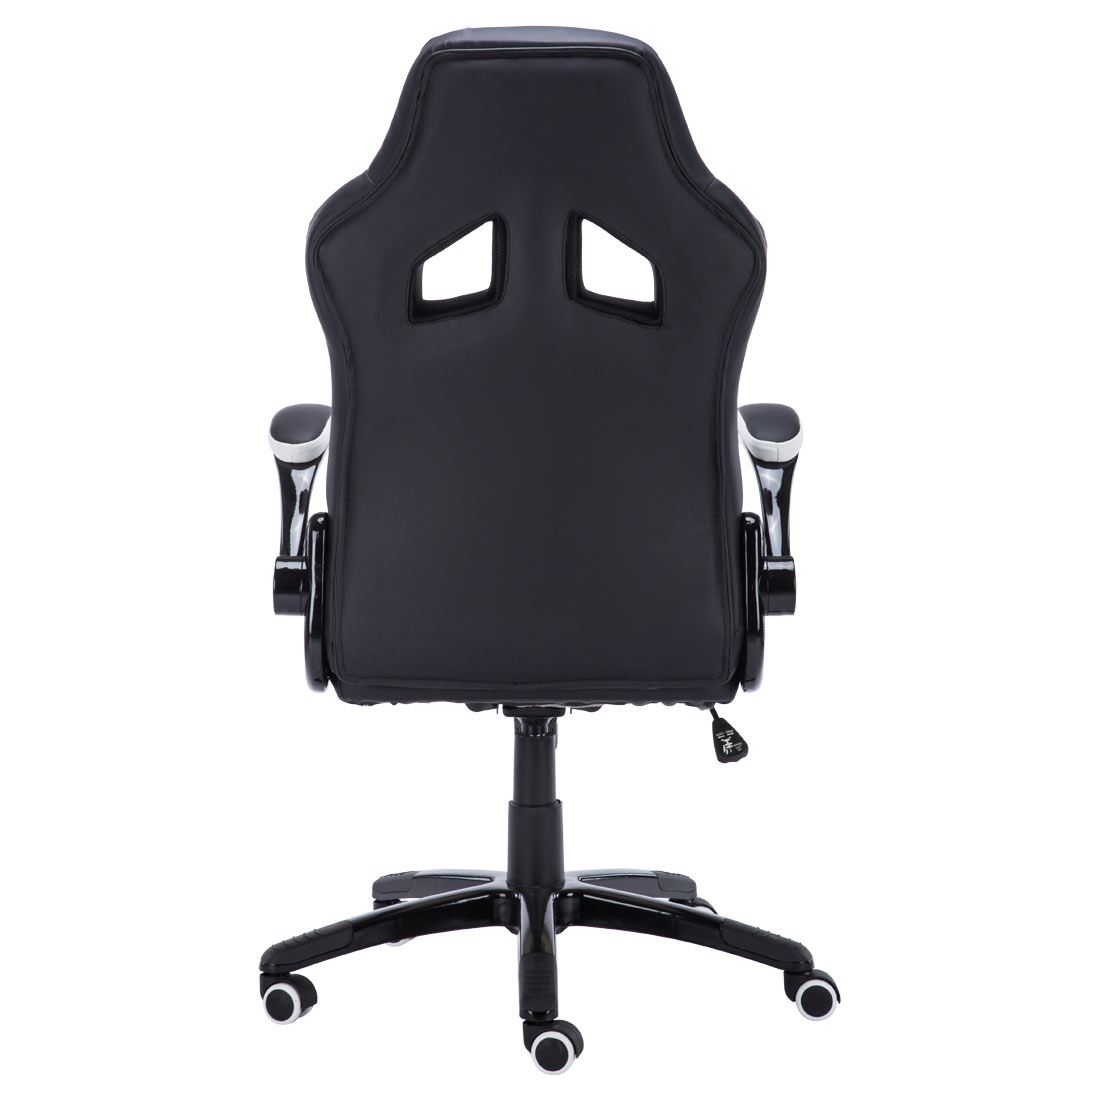 gtforce roadster 2 sport racing car office chair leather